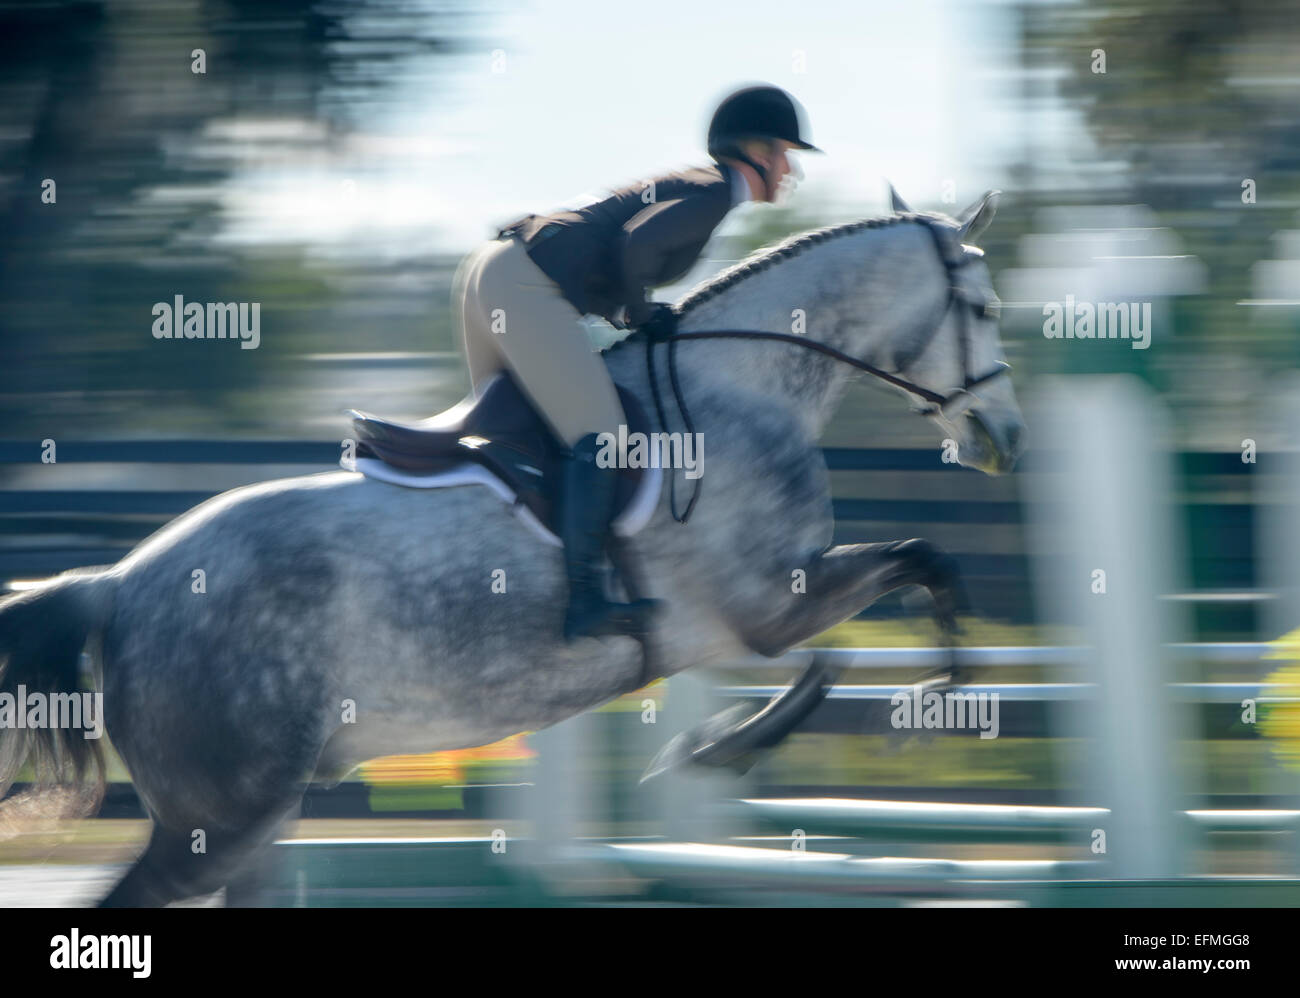 Show jumping competition Stock Photo